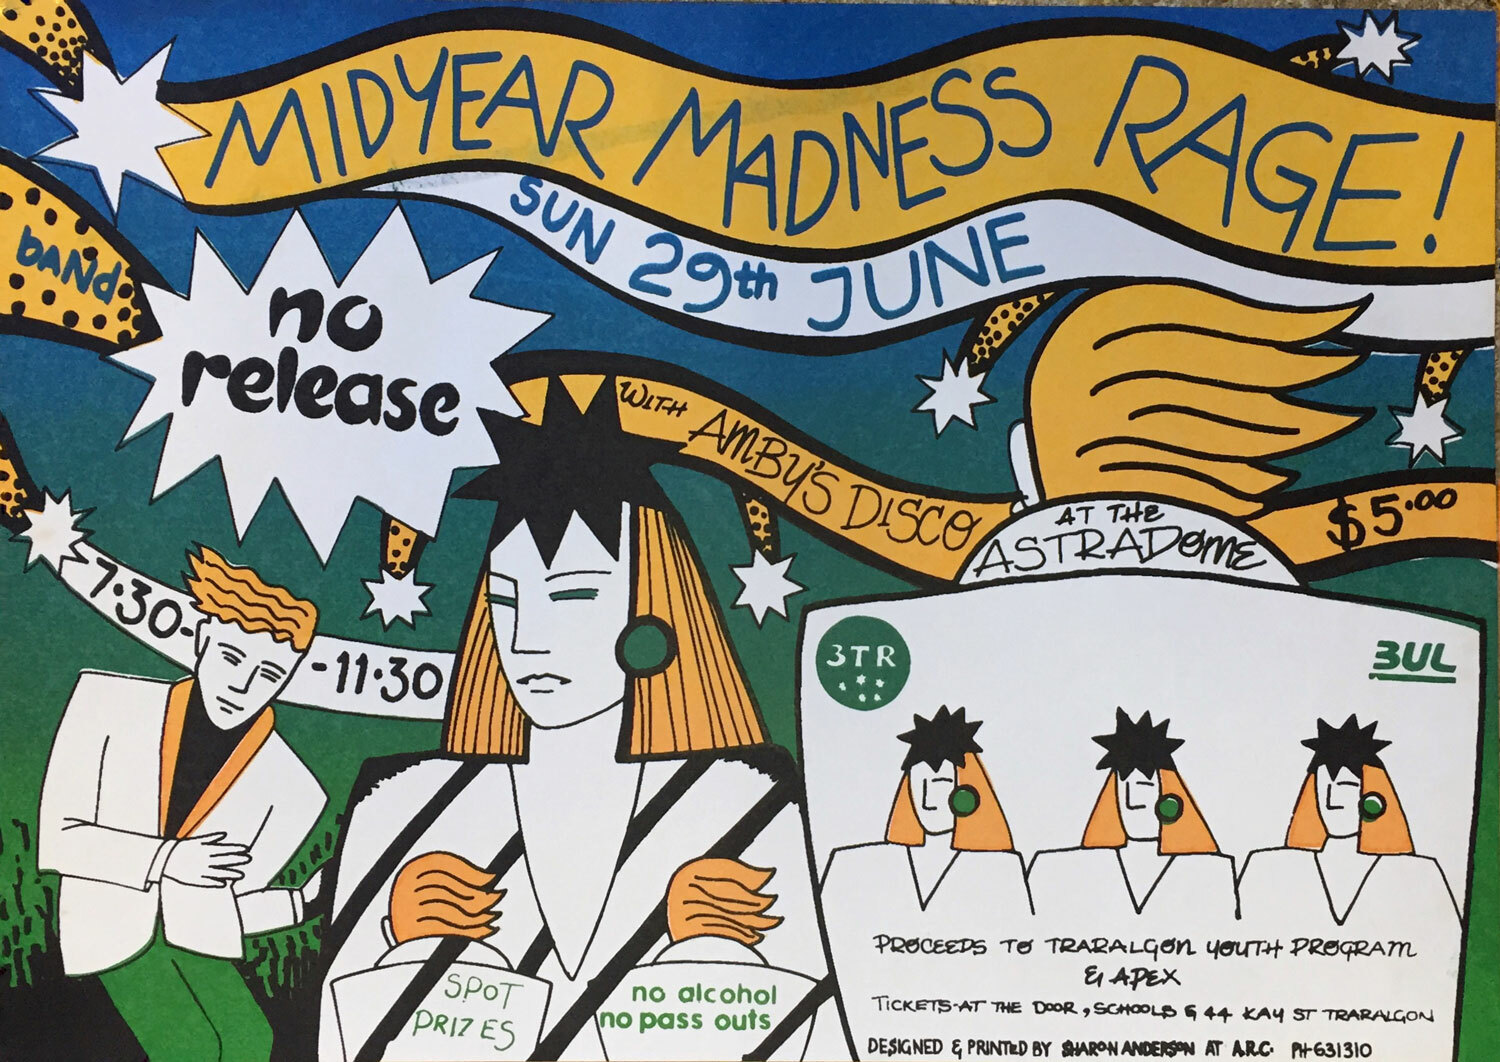 Midyear Madness Rage / A3 on Cartridge Paper - This is classic 80s and it was hosted at the Traralgon Astradome no less! It was the venue of the time. The poster shows the era's fashion too: big hair, big shoulders and everyone ready for fun. This poster was created with low-tech photo stencils, all hand-drawn lettering and it was hand-printed to boot. I even got paid for this one!